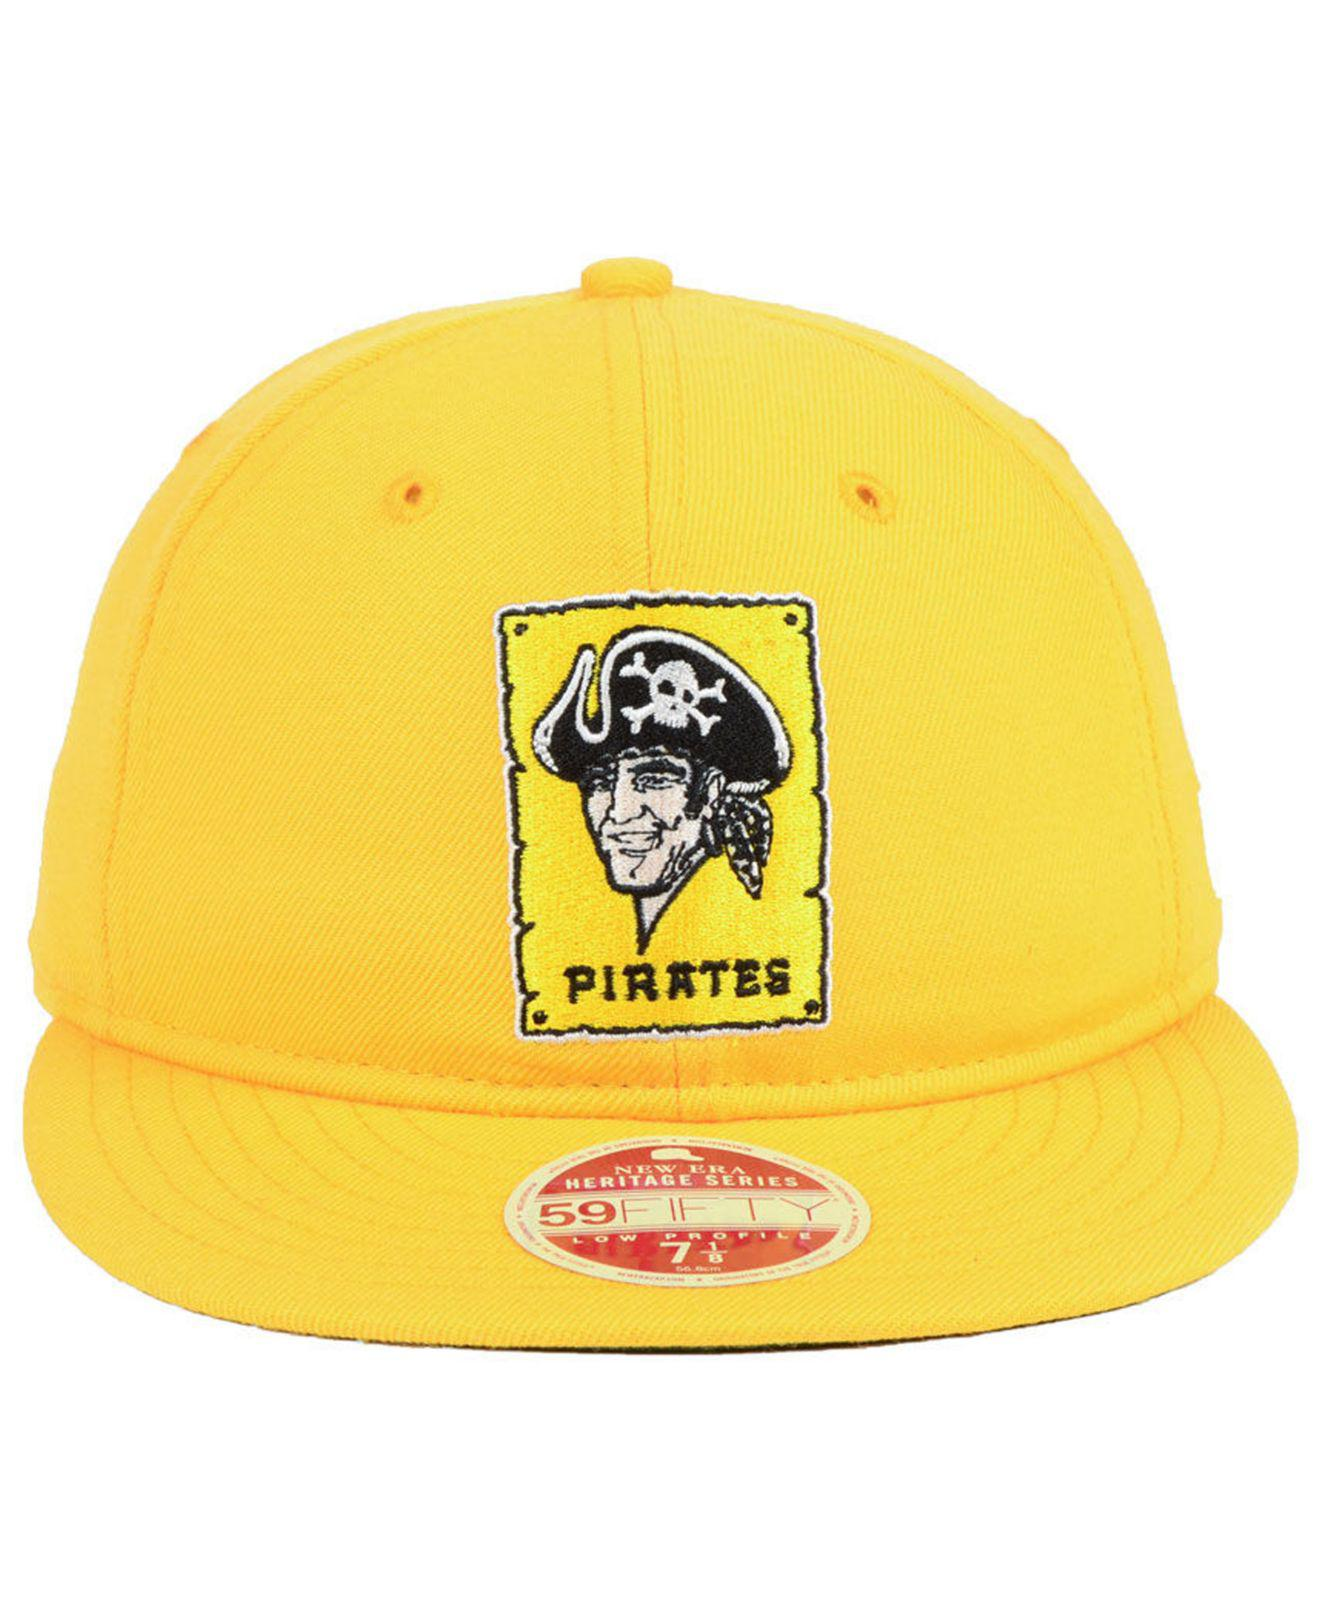 finest selection f1a50 806ce Lyst - KTZ Pittsburgh Pirates Heritage Retro Classic 59fifty Fitted Cap in  Metallic for Men